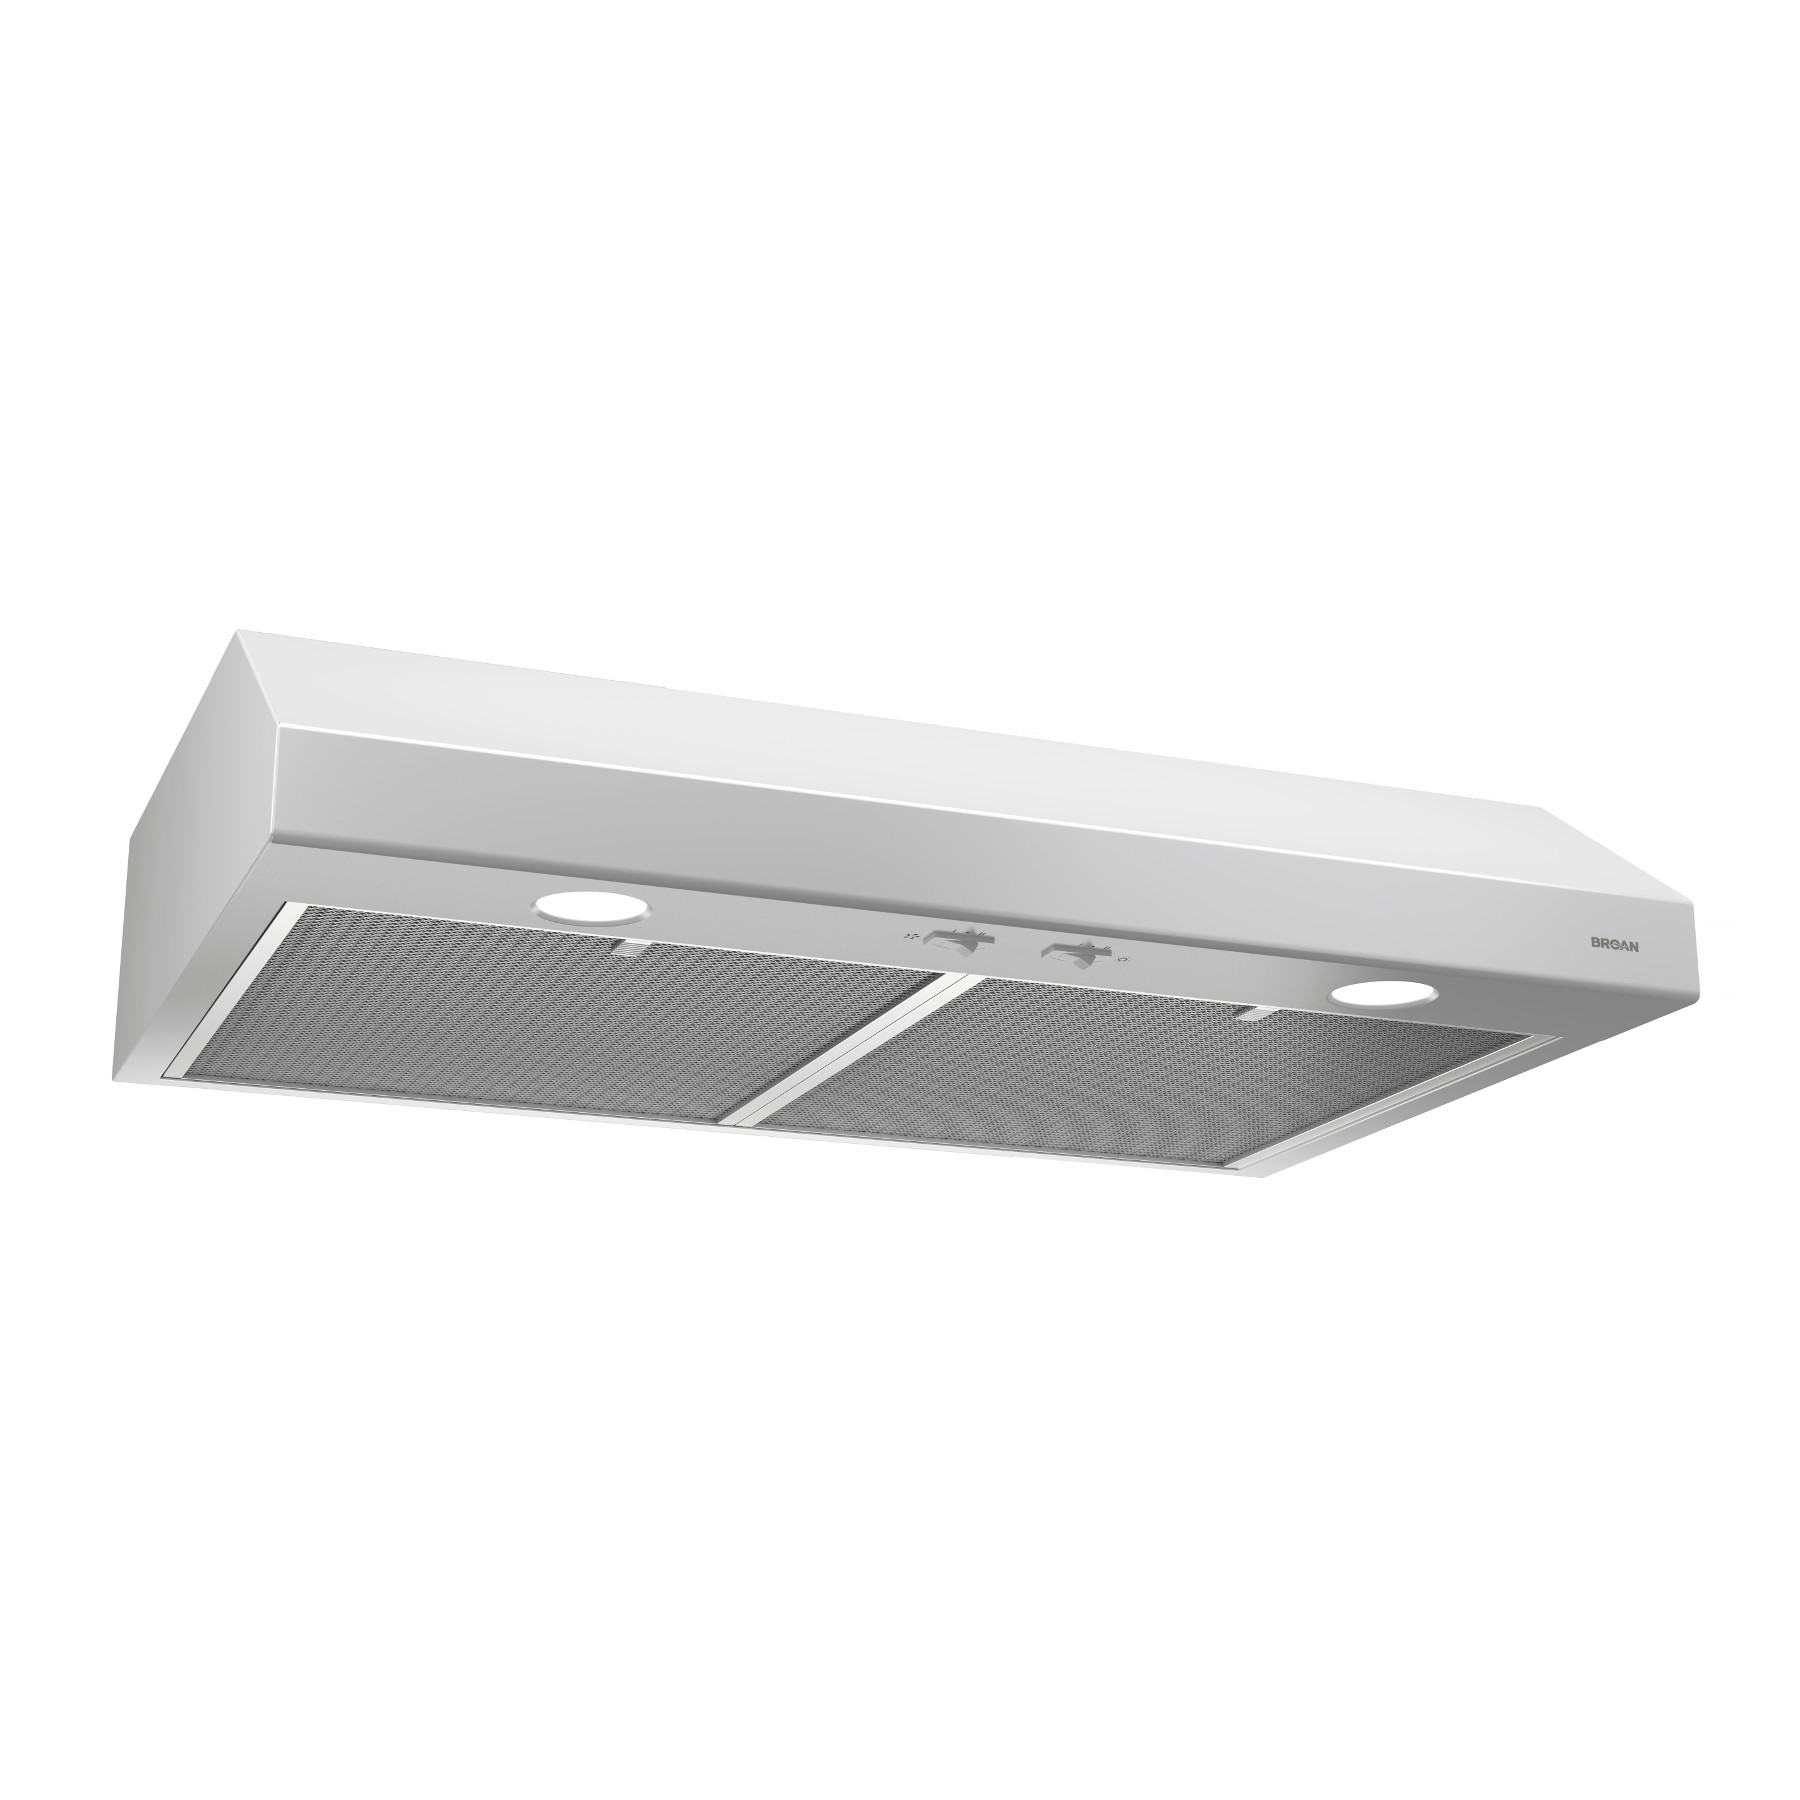 Bcsd124ww Broan 24 Inch Convertible Under Cabinet Range Hood White